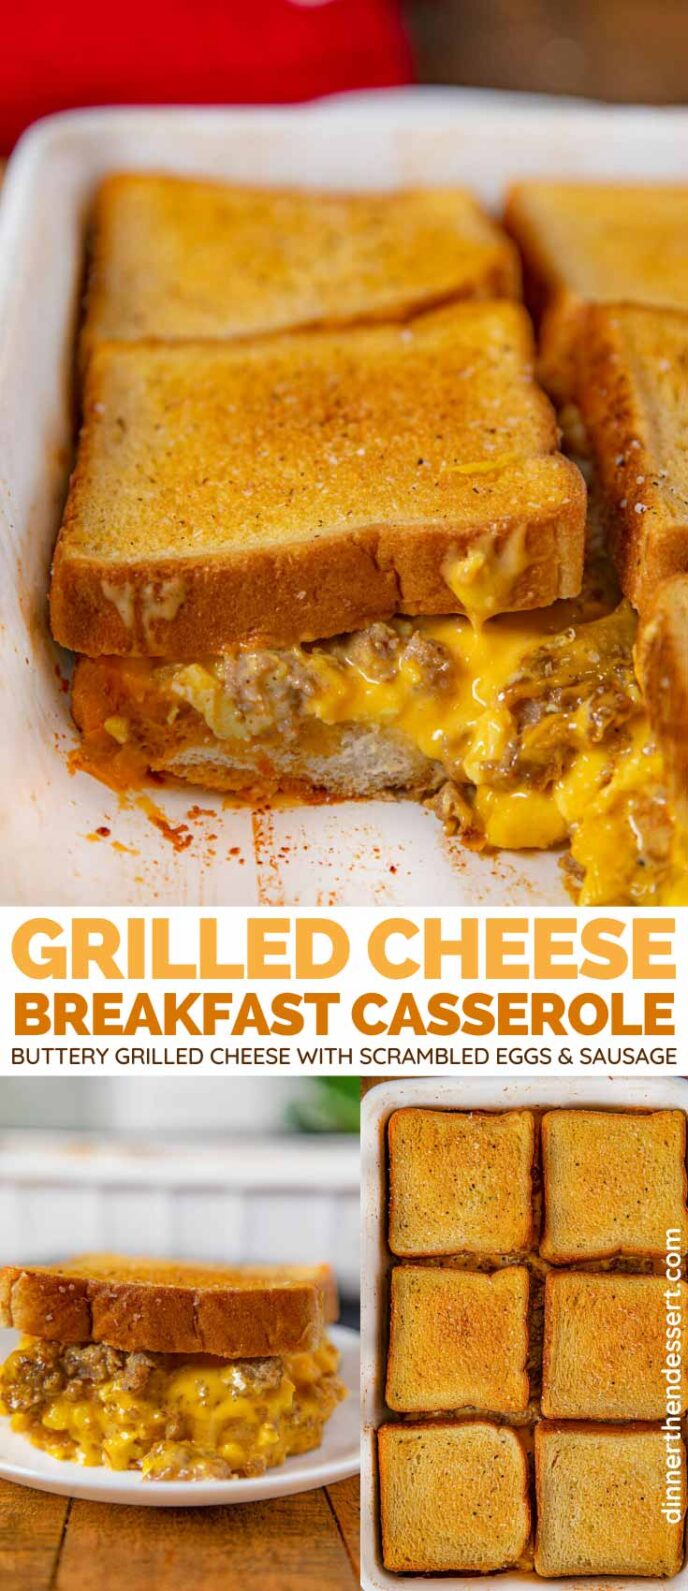 Grilled Cheese Breakfast Casserole collage